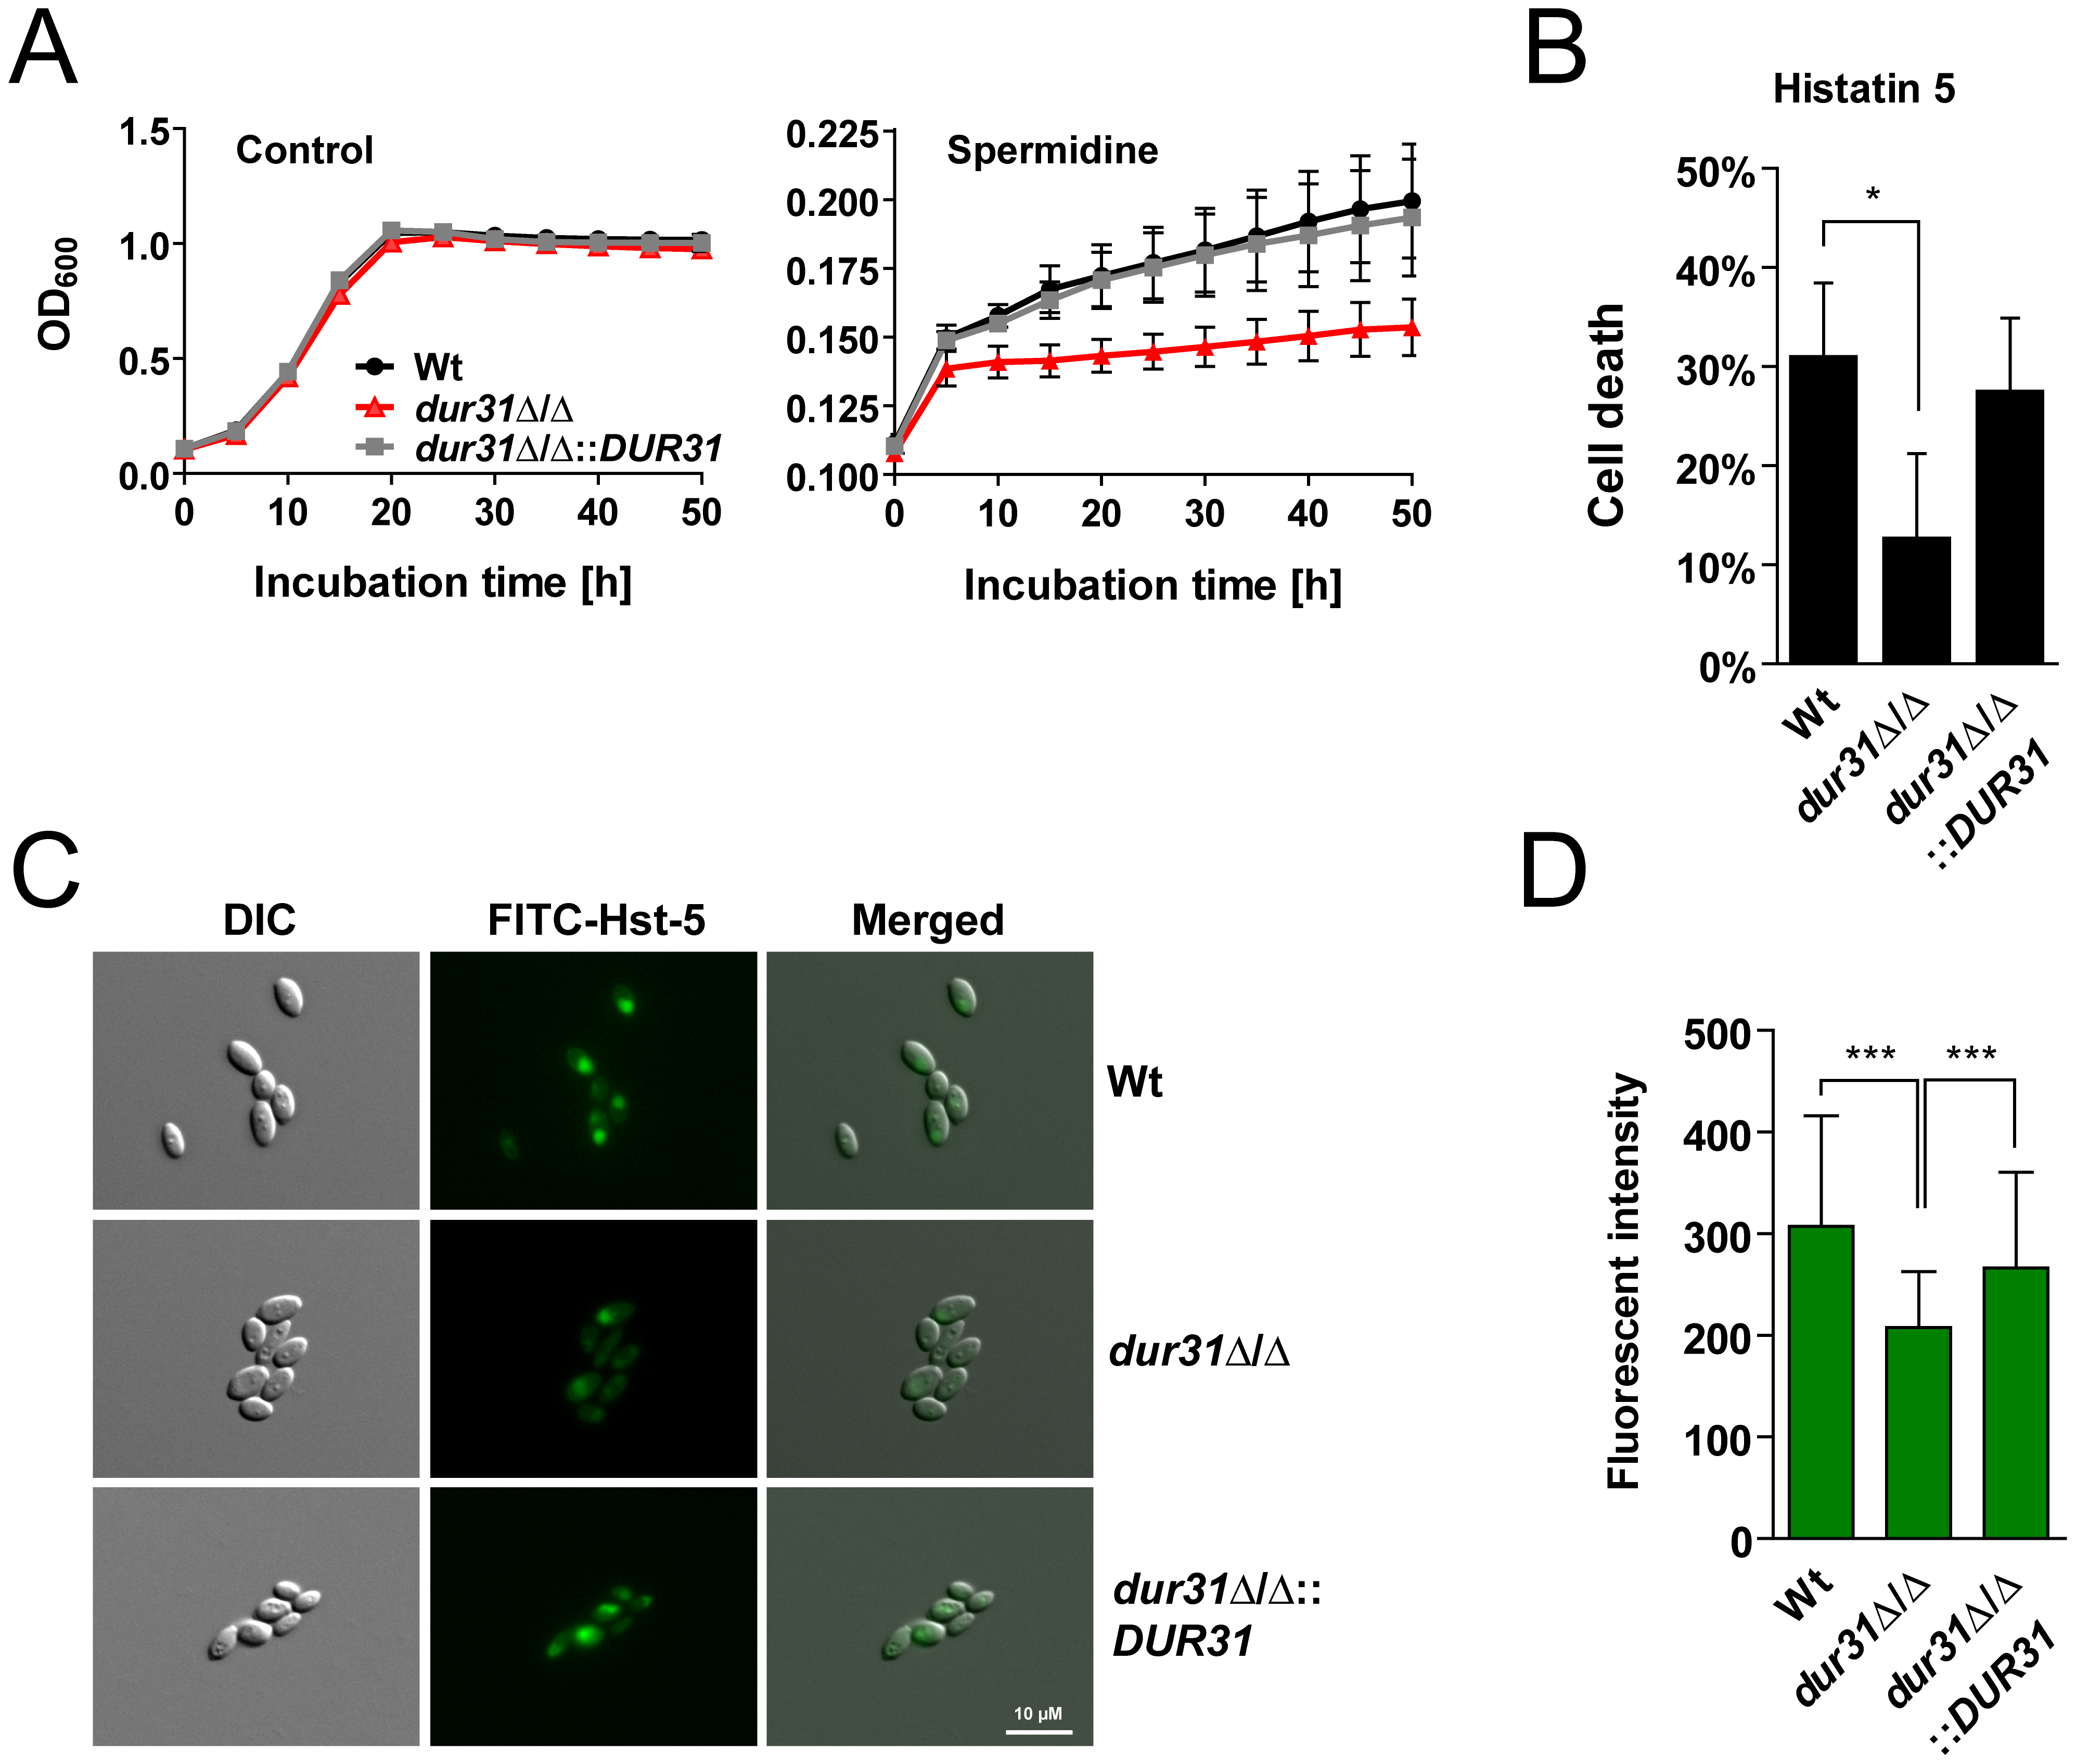 Dur31 mediates both spermidine assimilation and histatin 5 sensitivity.